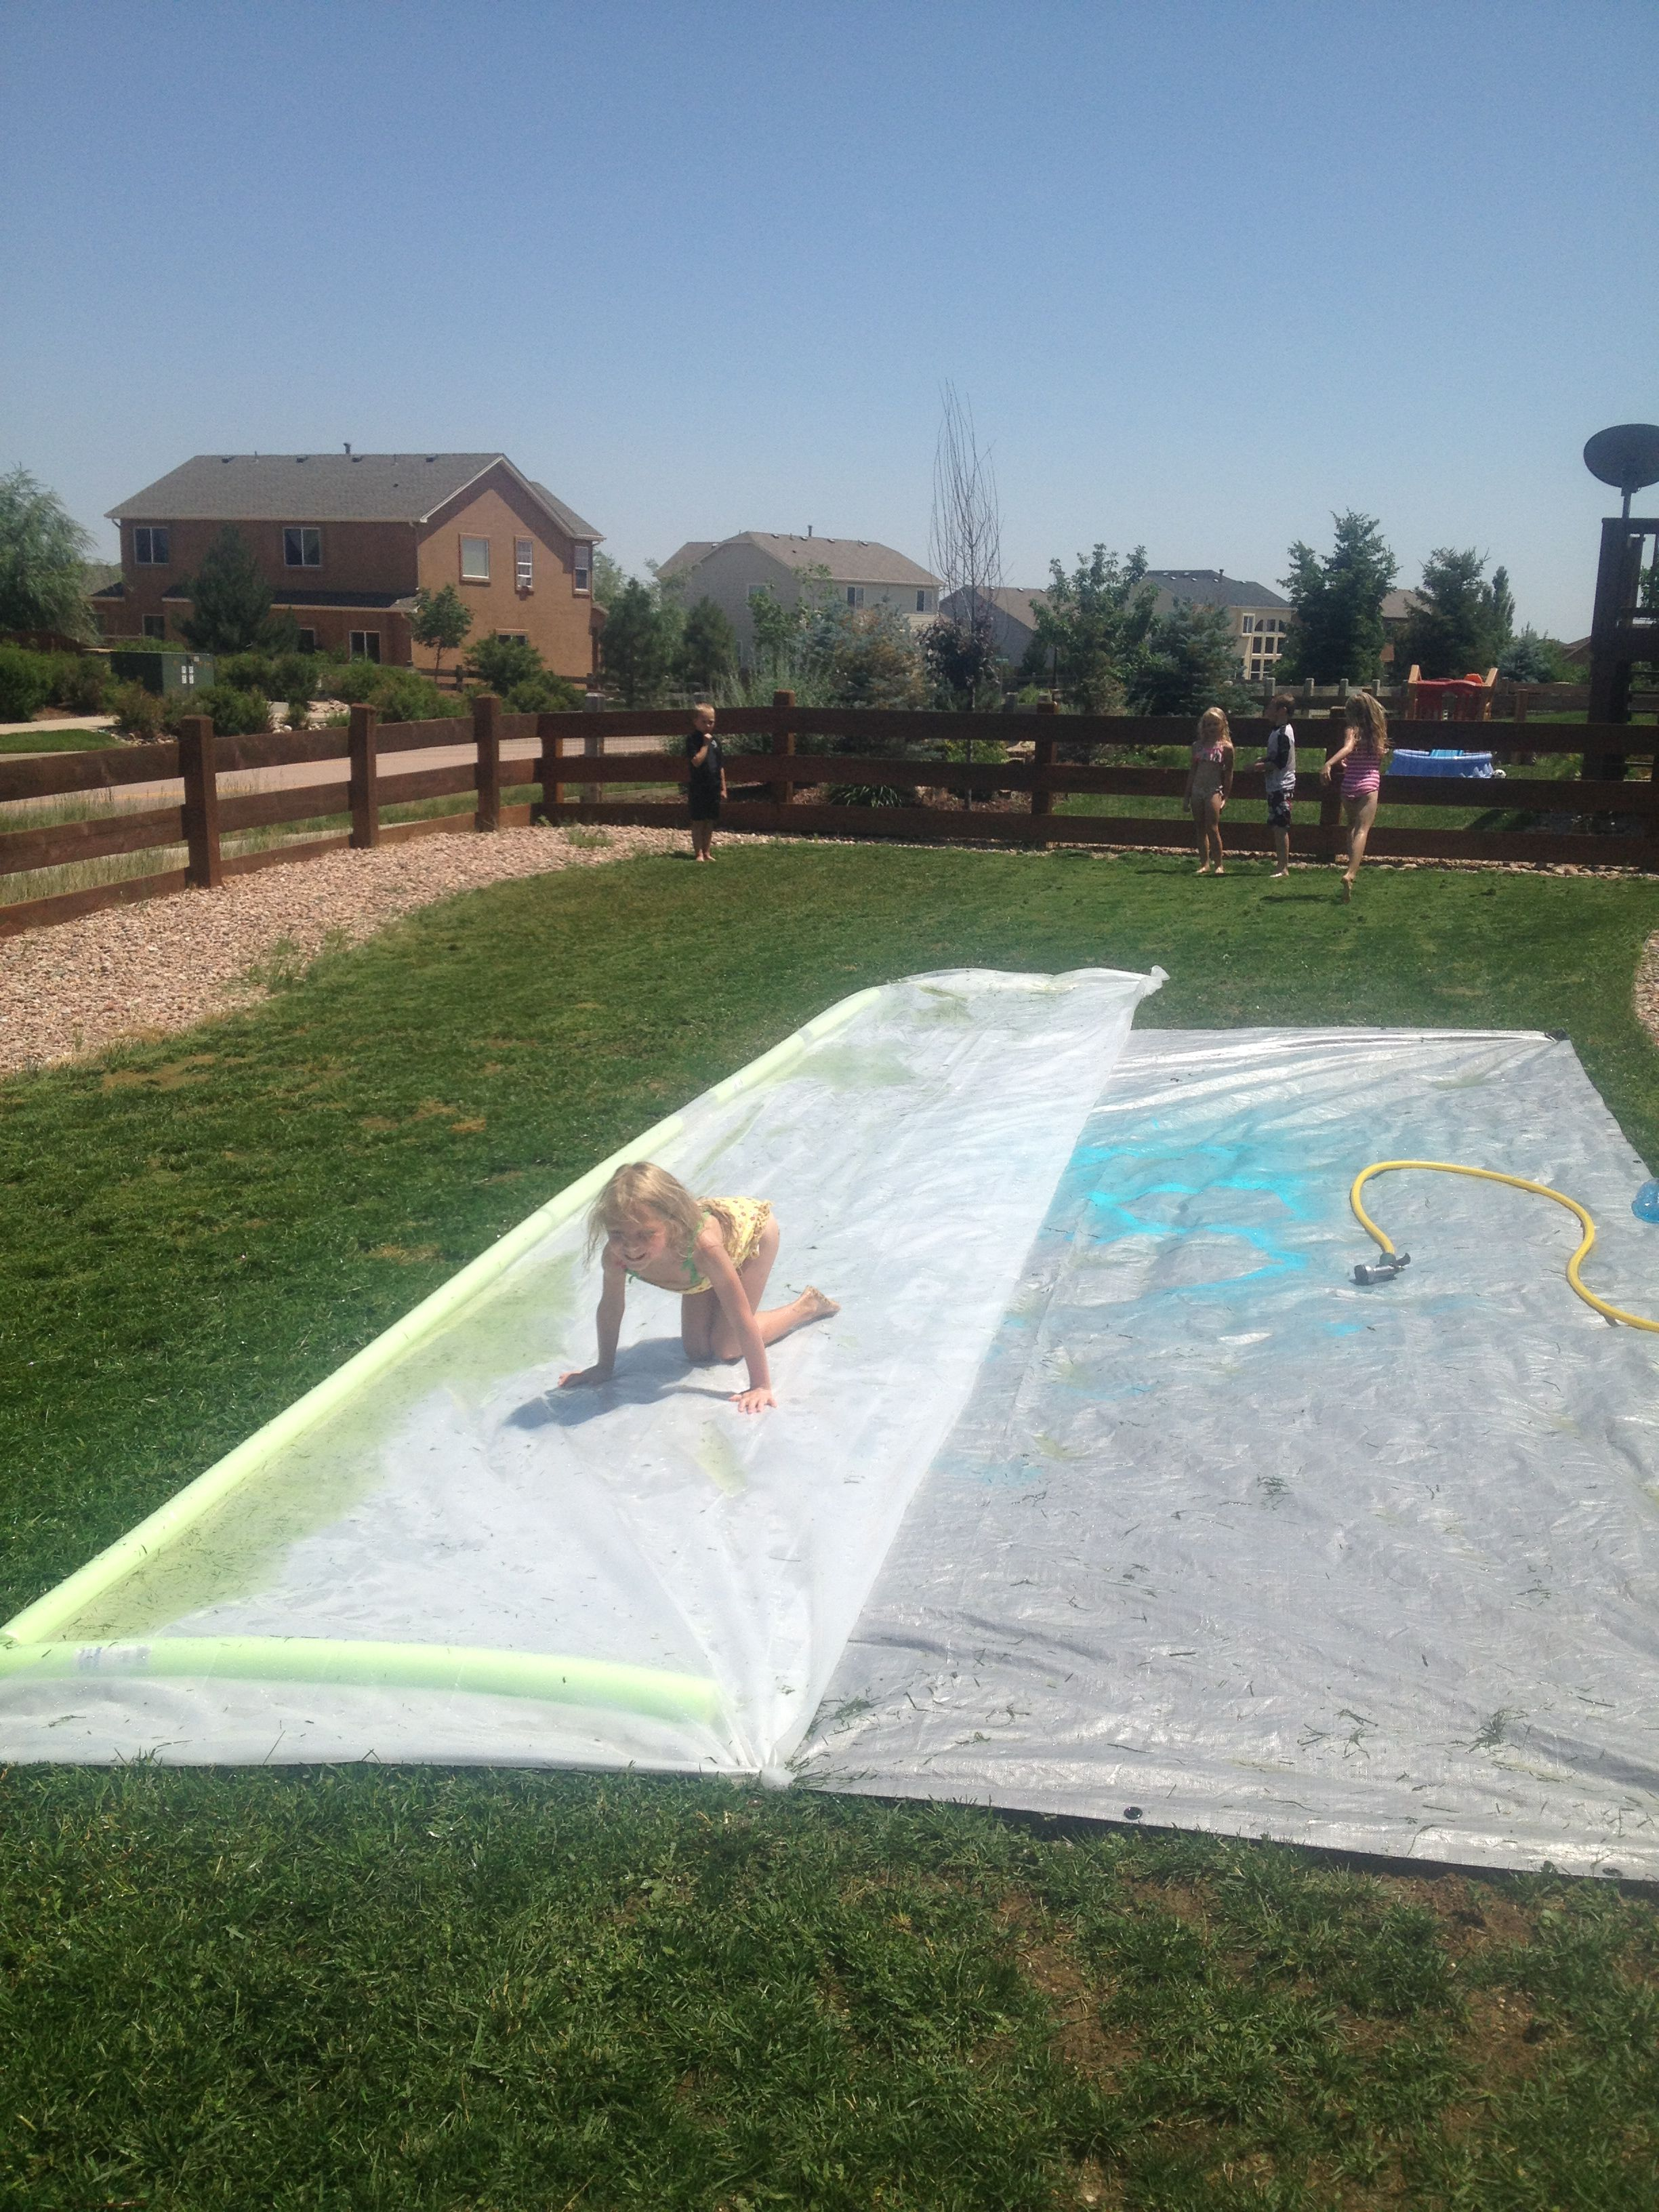 Home Depot Plastic Sheeting : depot, plastic, sheeting, Kimberly, Zepeda, Things, Done!!!!, Outdoor, Kids,, Summer, Water